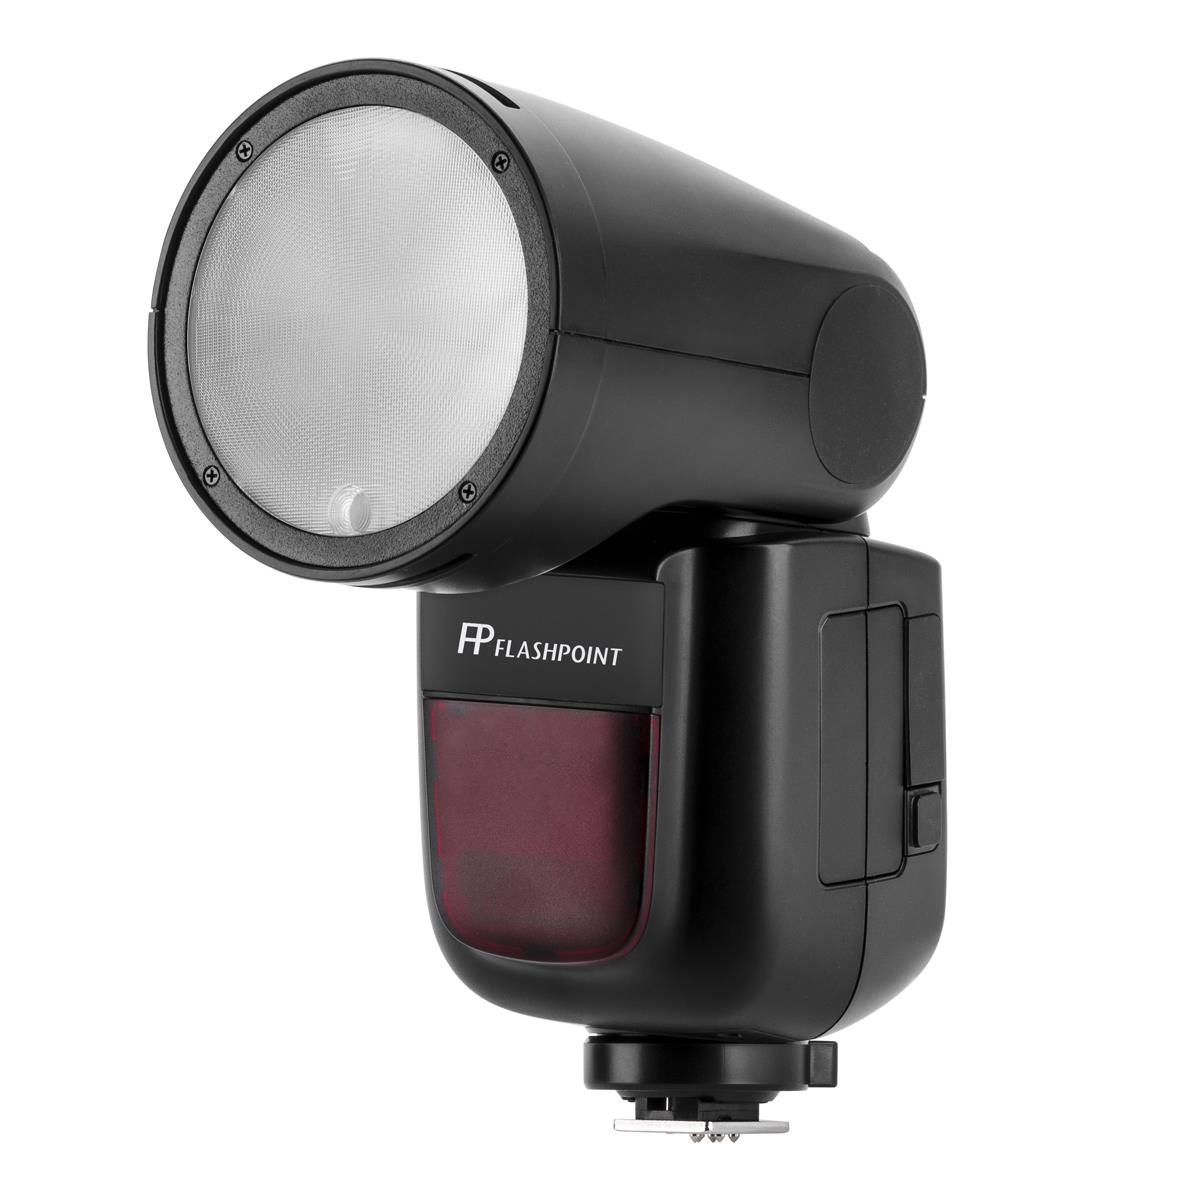 Godox V1/Flashpoint flash for Pentax now available for pre-order - Pentax Rumors